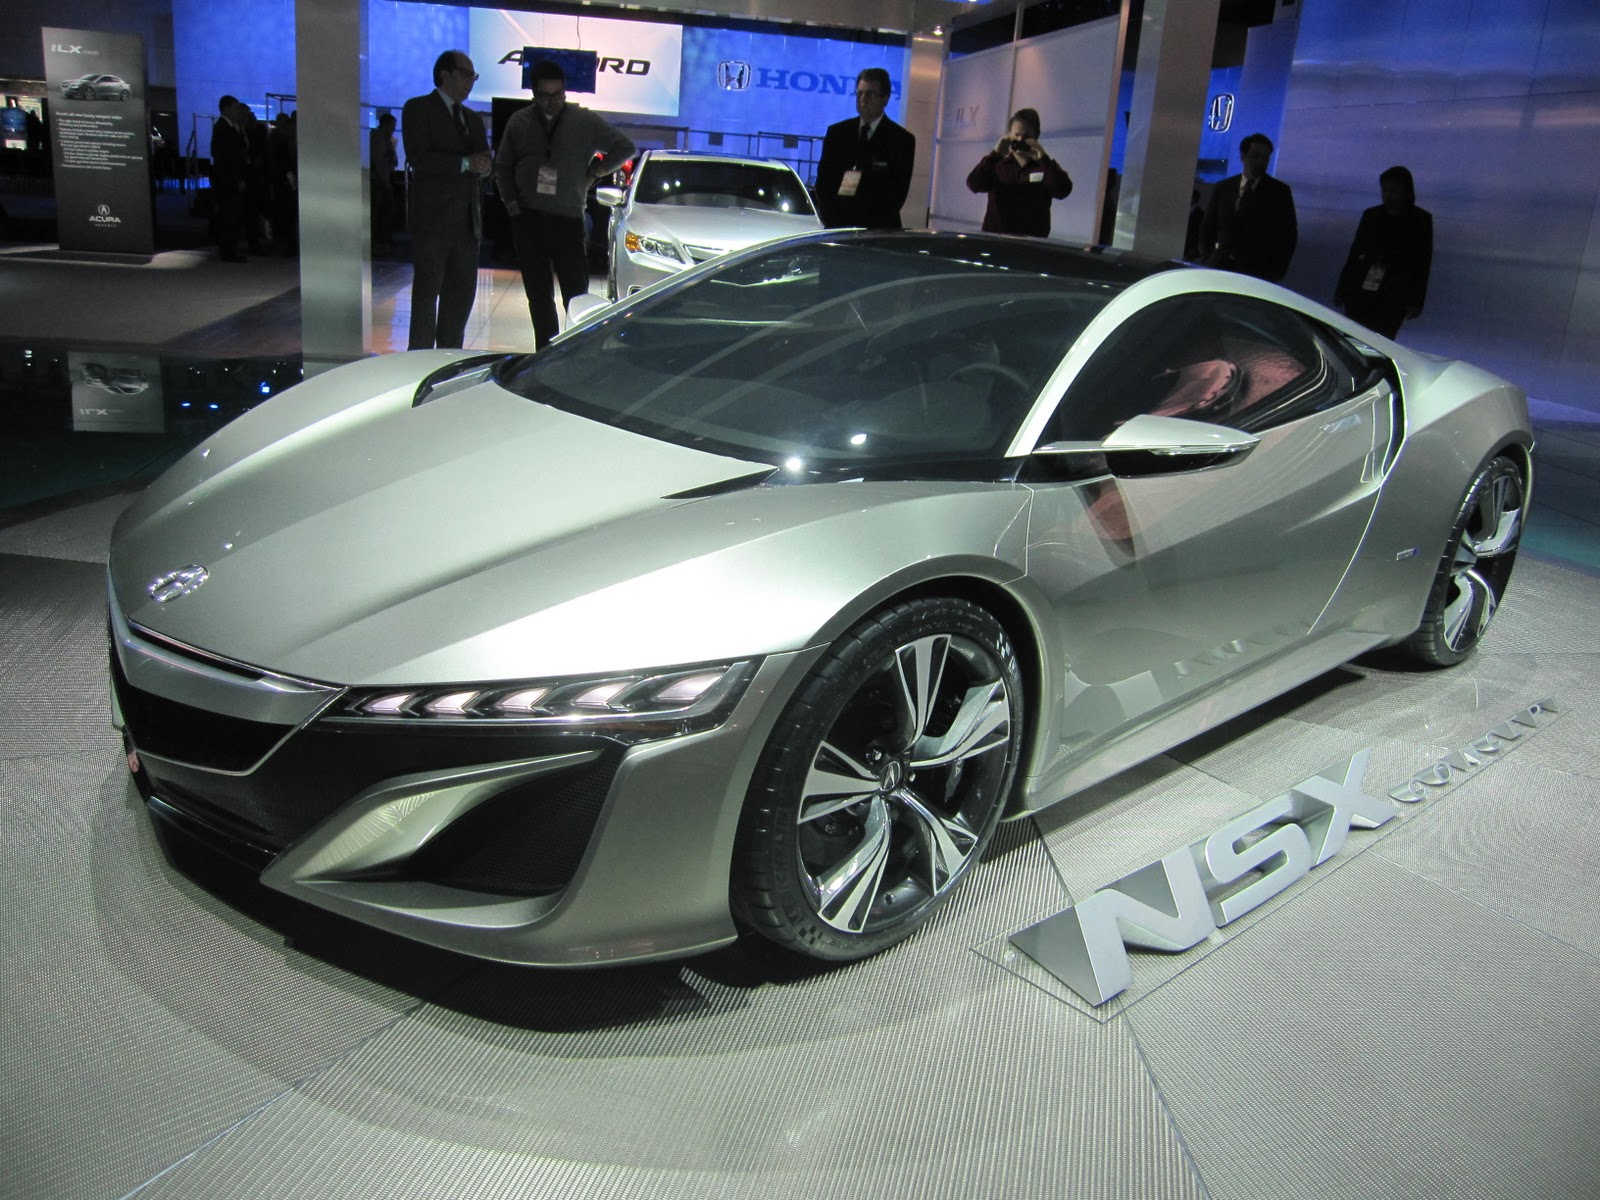 voiture du futur le retour de la nsx chez honda technologie et performances. Black Bedroom Furniture Sets. Home Design Ideas